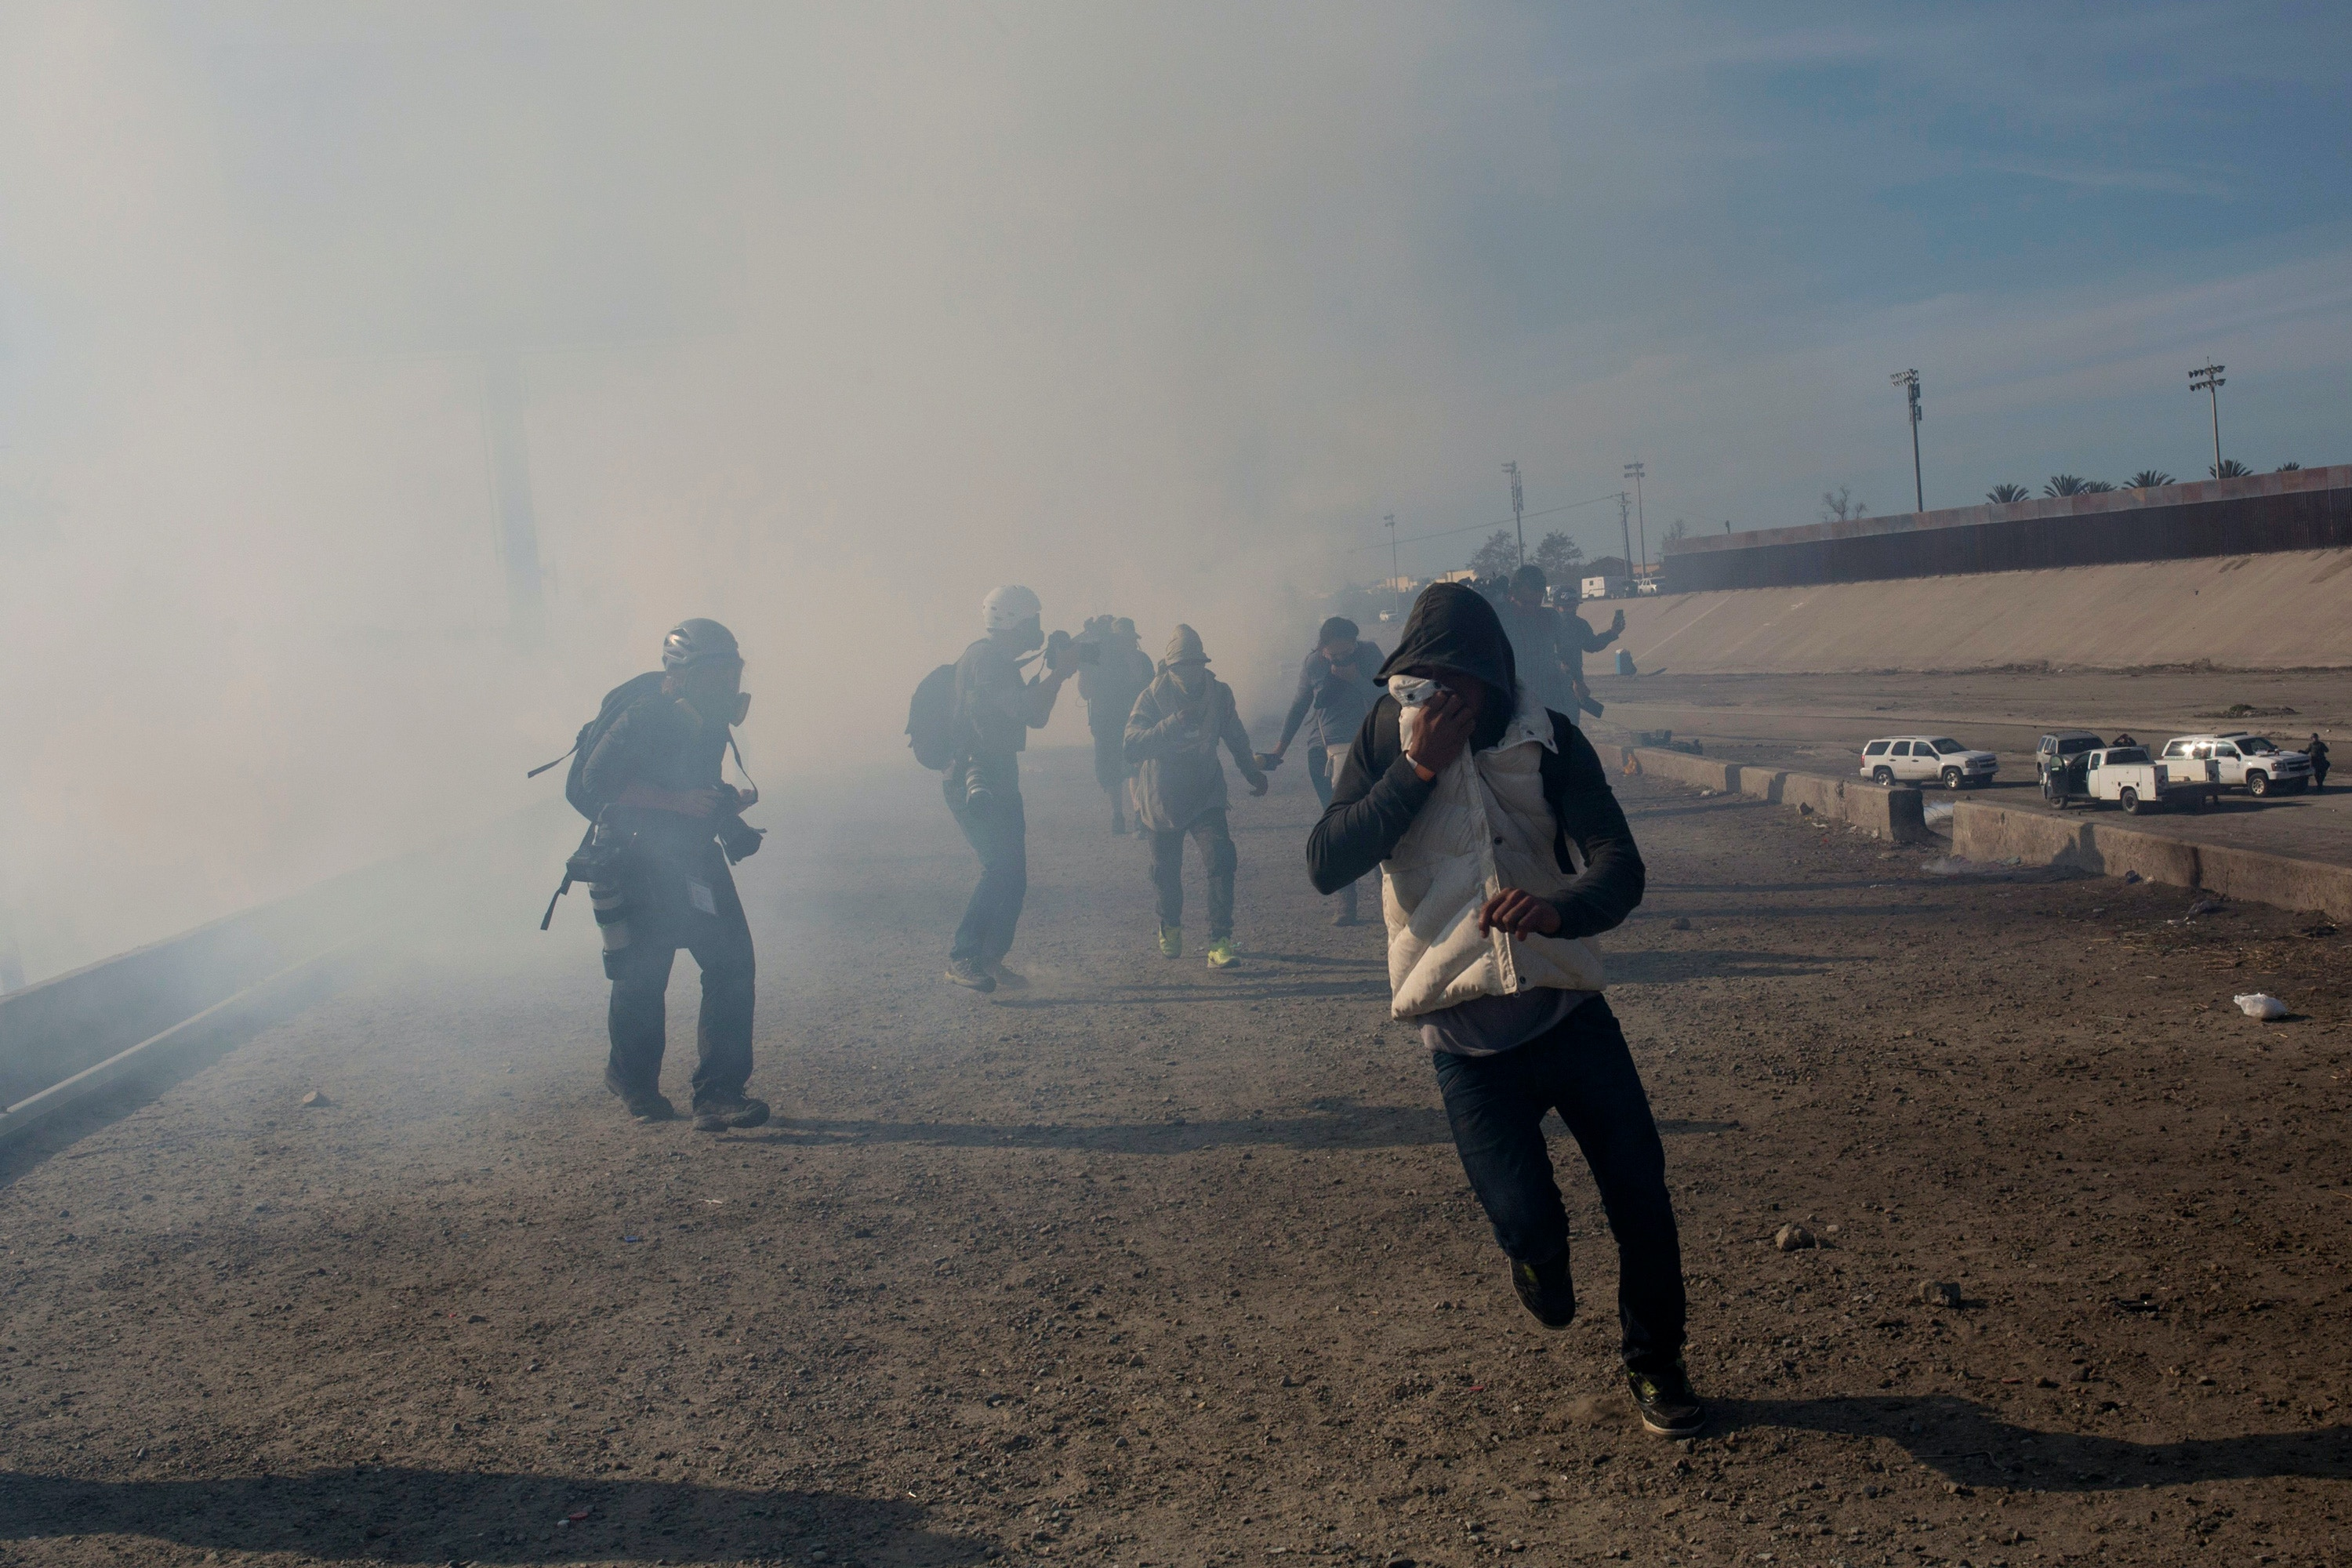 FILE - In this Nov. 25, 2018, file photo, migrants run from tear gas launched by U.S. agents, amid photojournalists covering the Mexico-U.S. border, after a group of migrants got past Mexican police at the Chaparral crossing in Tijuana, Mexico. Children torn from their parents, refugees turned away, tear gas fired on asylum-seekers, and a swath of the globe derided by the president in crude language. In a breathless 2018, they were just a handful of headlines on immigration, one of the year's most dominant issues. (AP Photo/Rodrigo Abd, File)